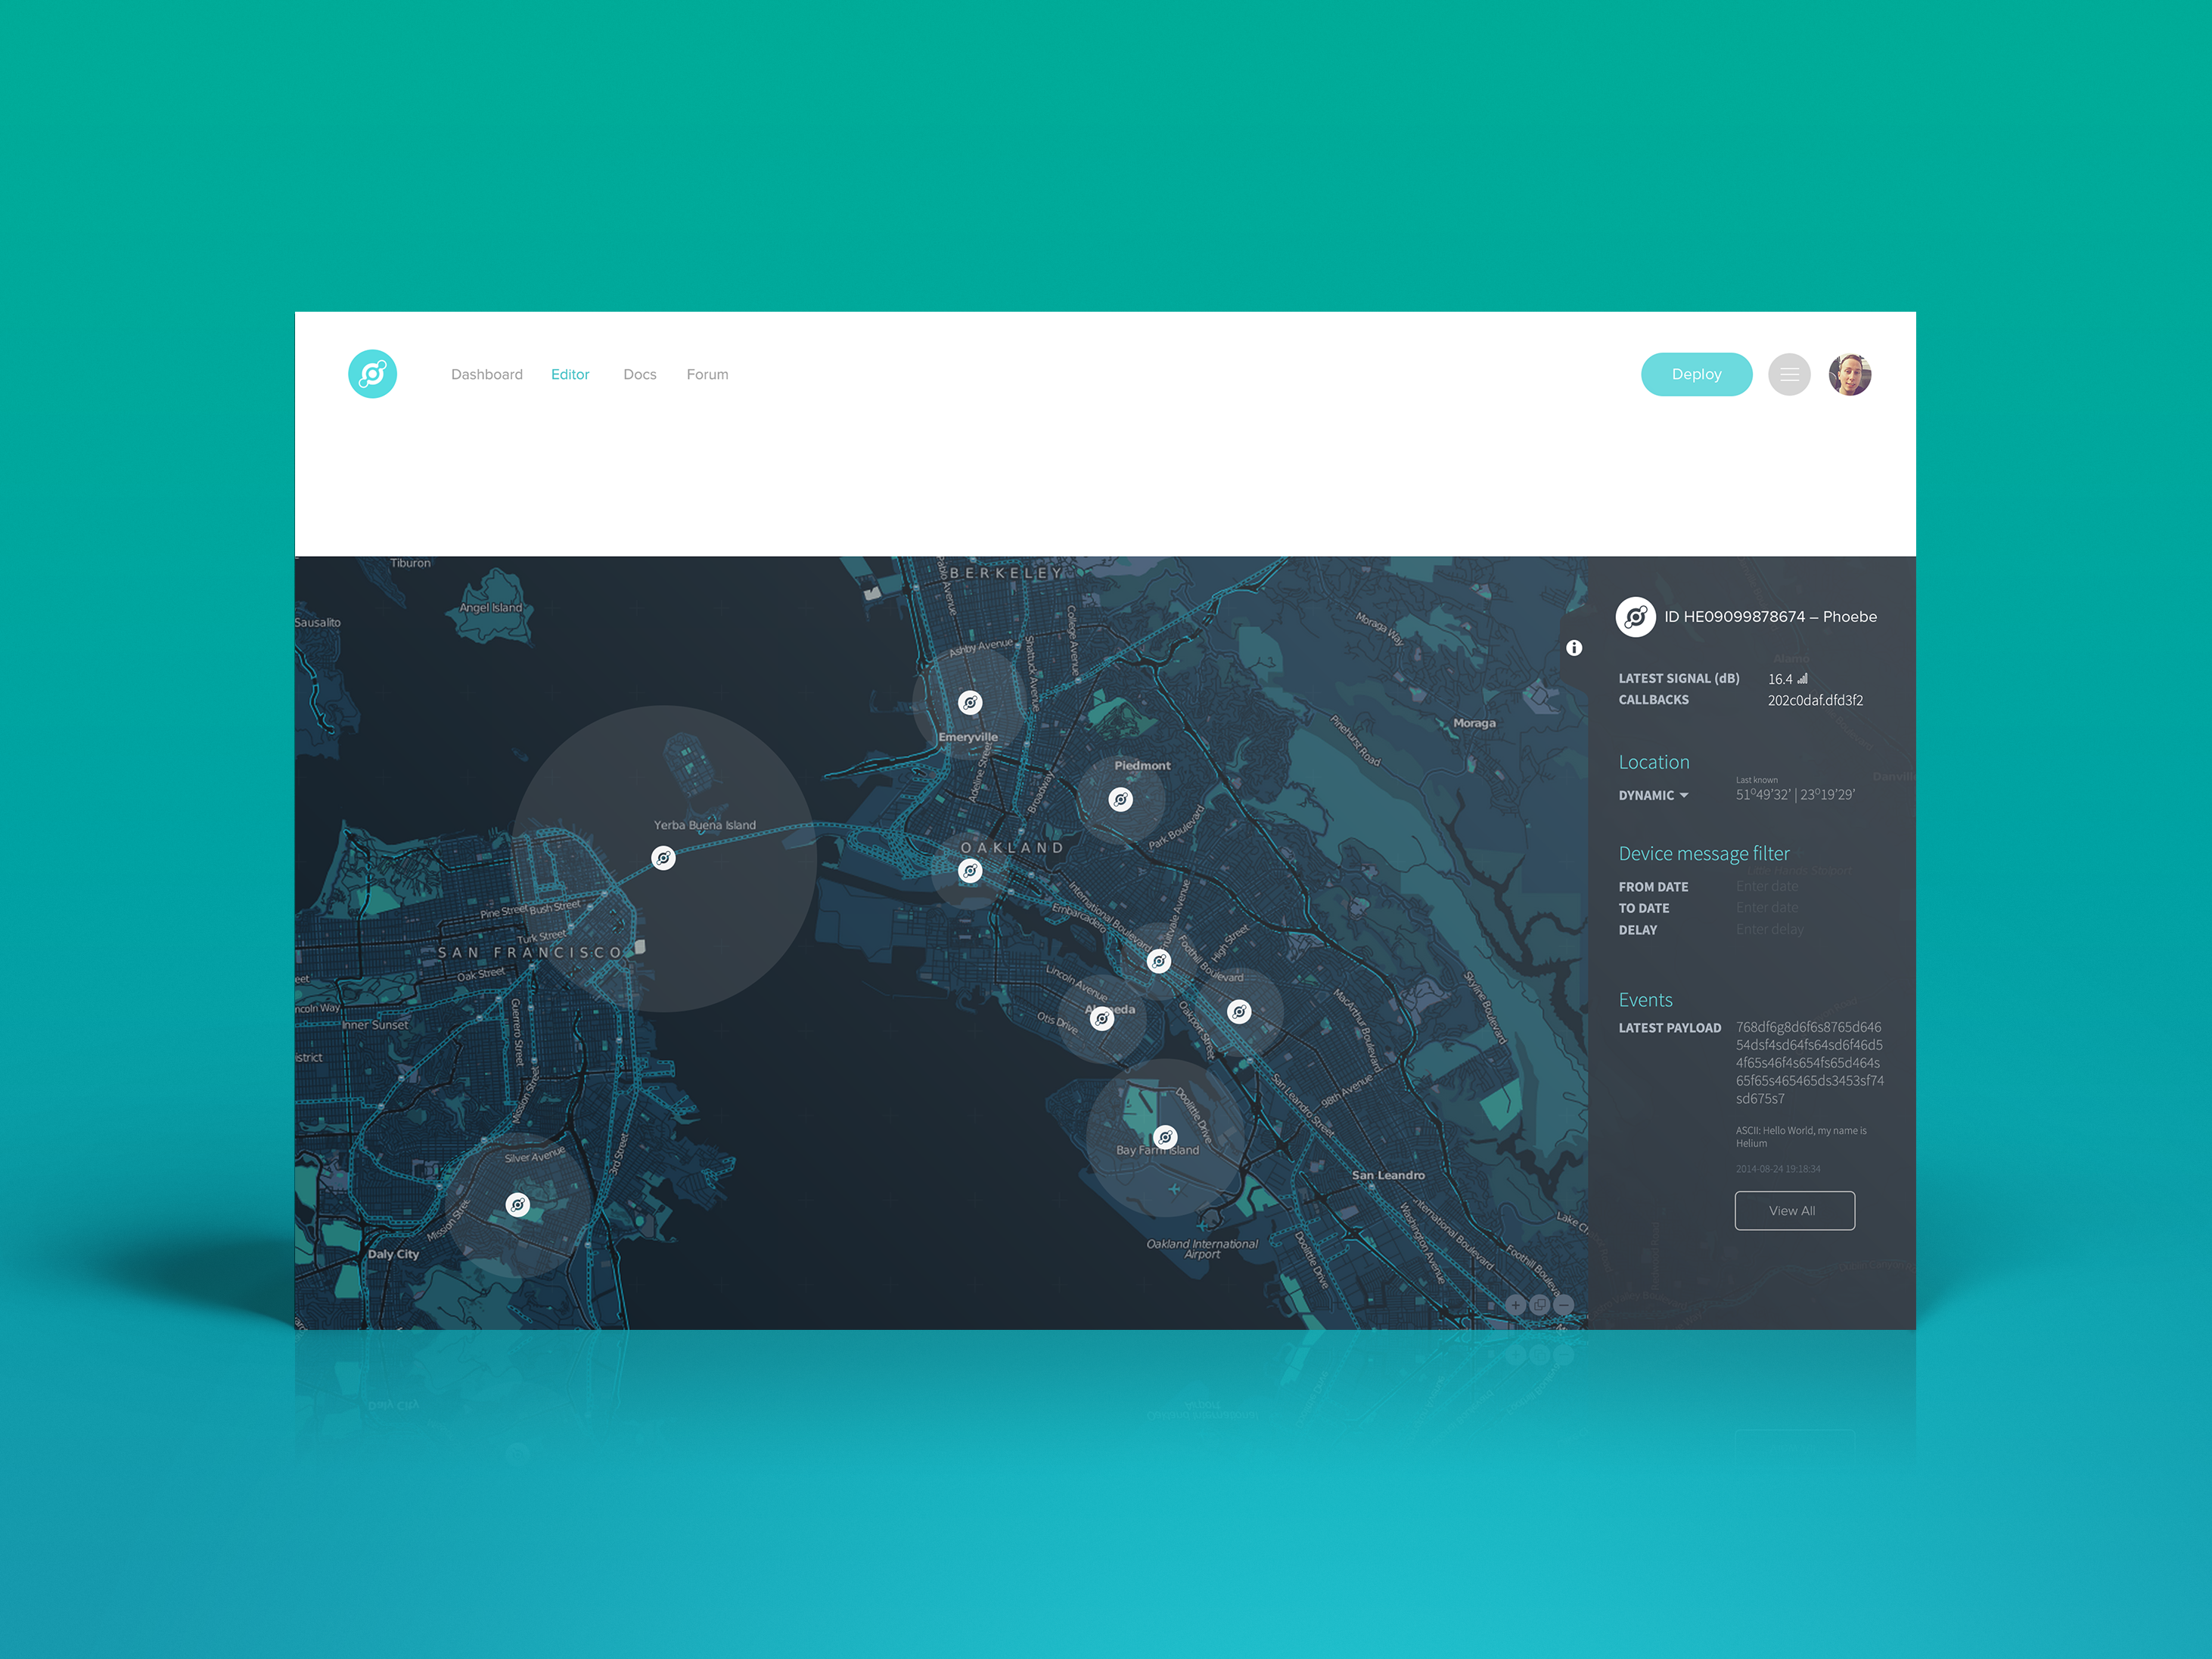 Ui Design Ideas inspirational ui design 15 Helium Map Dashboard User Interface Flat Ui Design Ns This Is Wonderfully Tight Colour Control But Also Cleantexture Contrast And That Negative Space